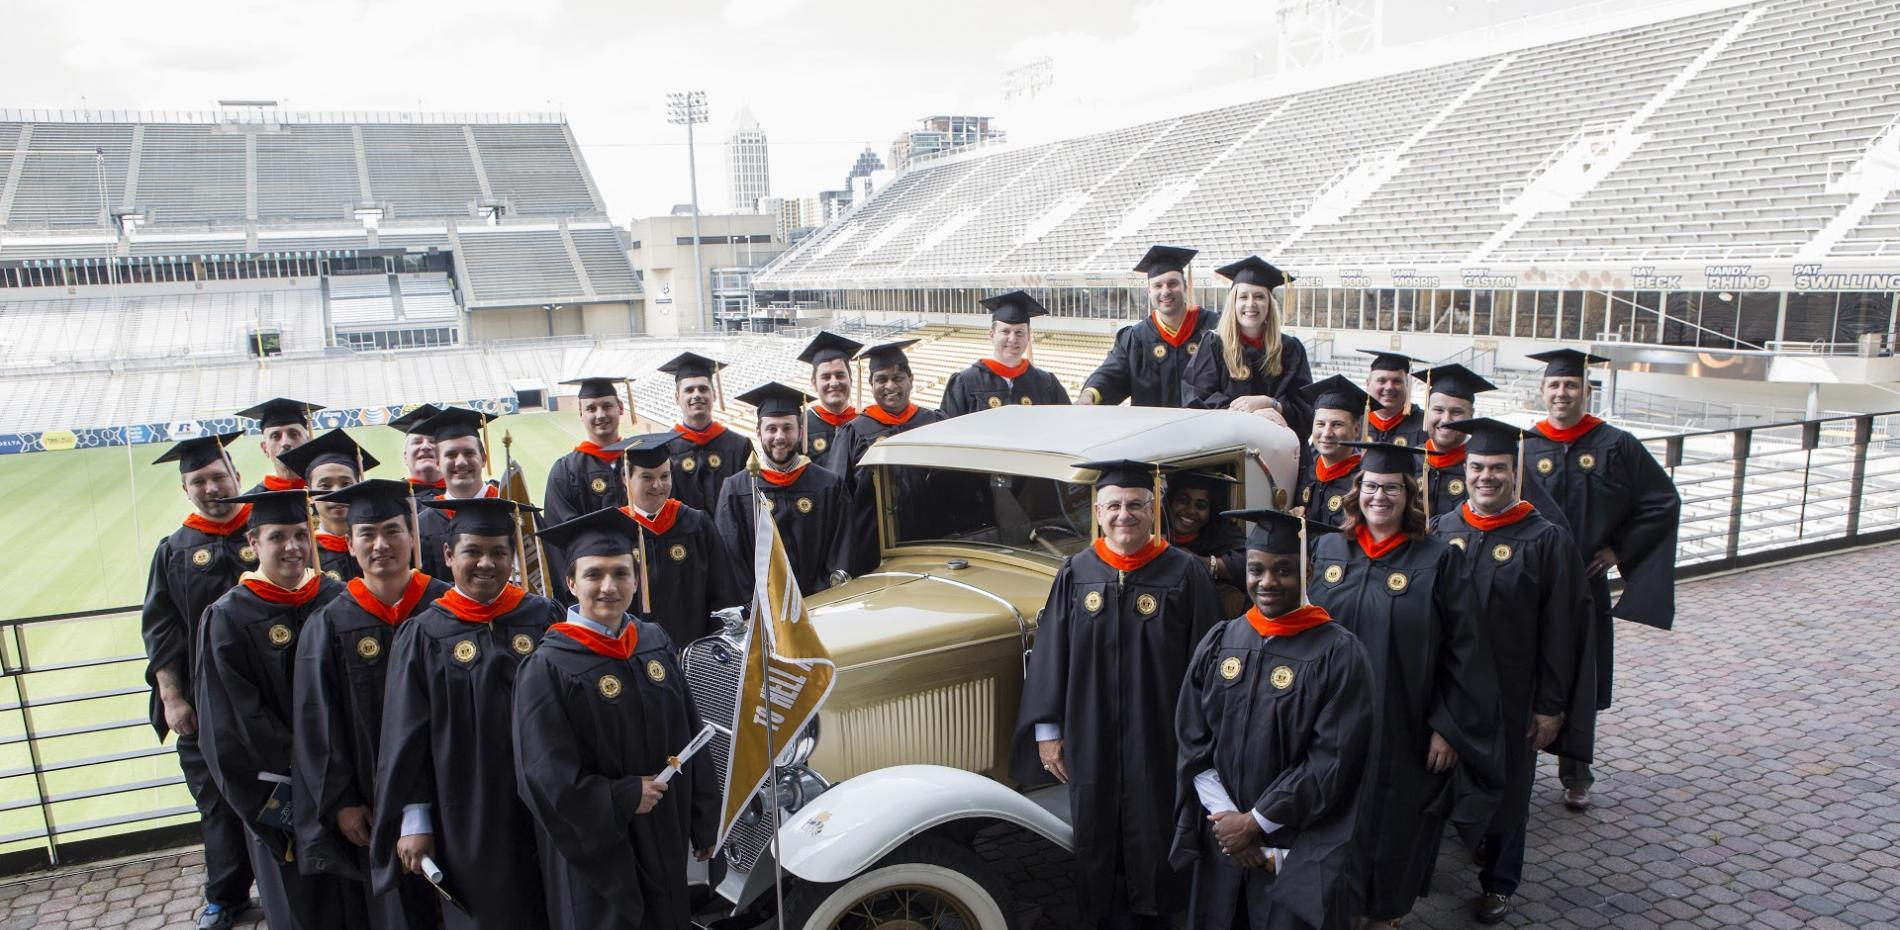 Professional Master's in Applied Systems Engineering graduates stand need to Ramblin Wreck at Bobby Dodd Stadium